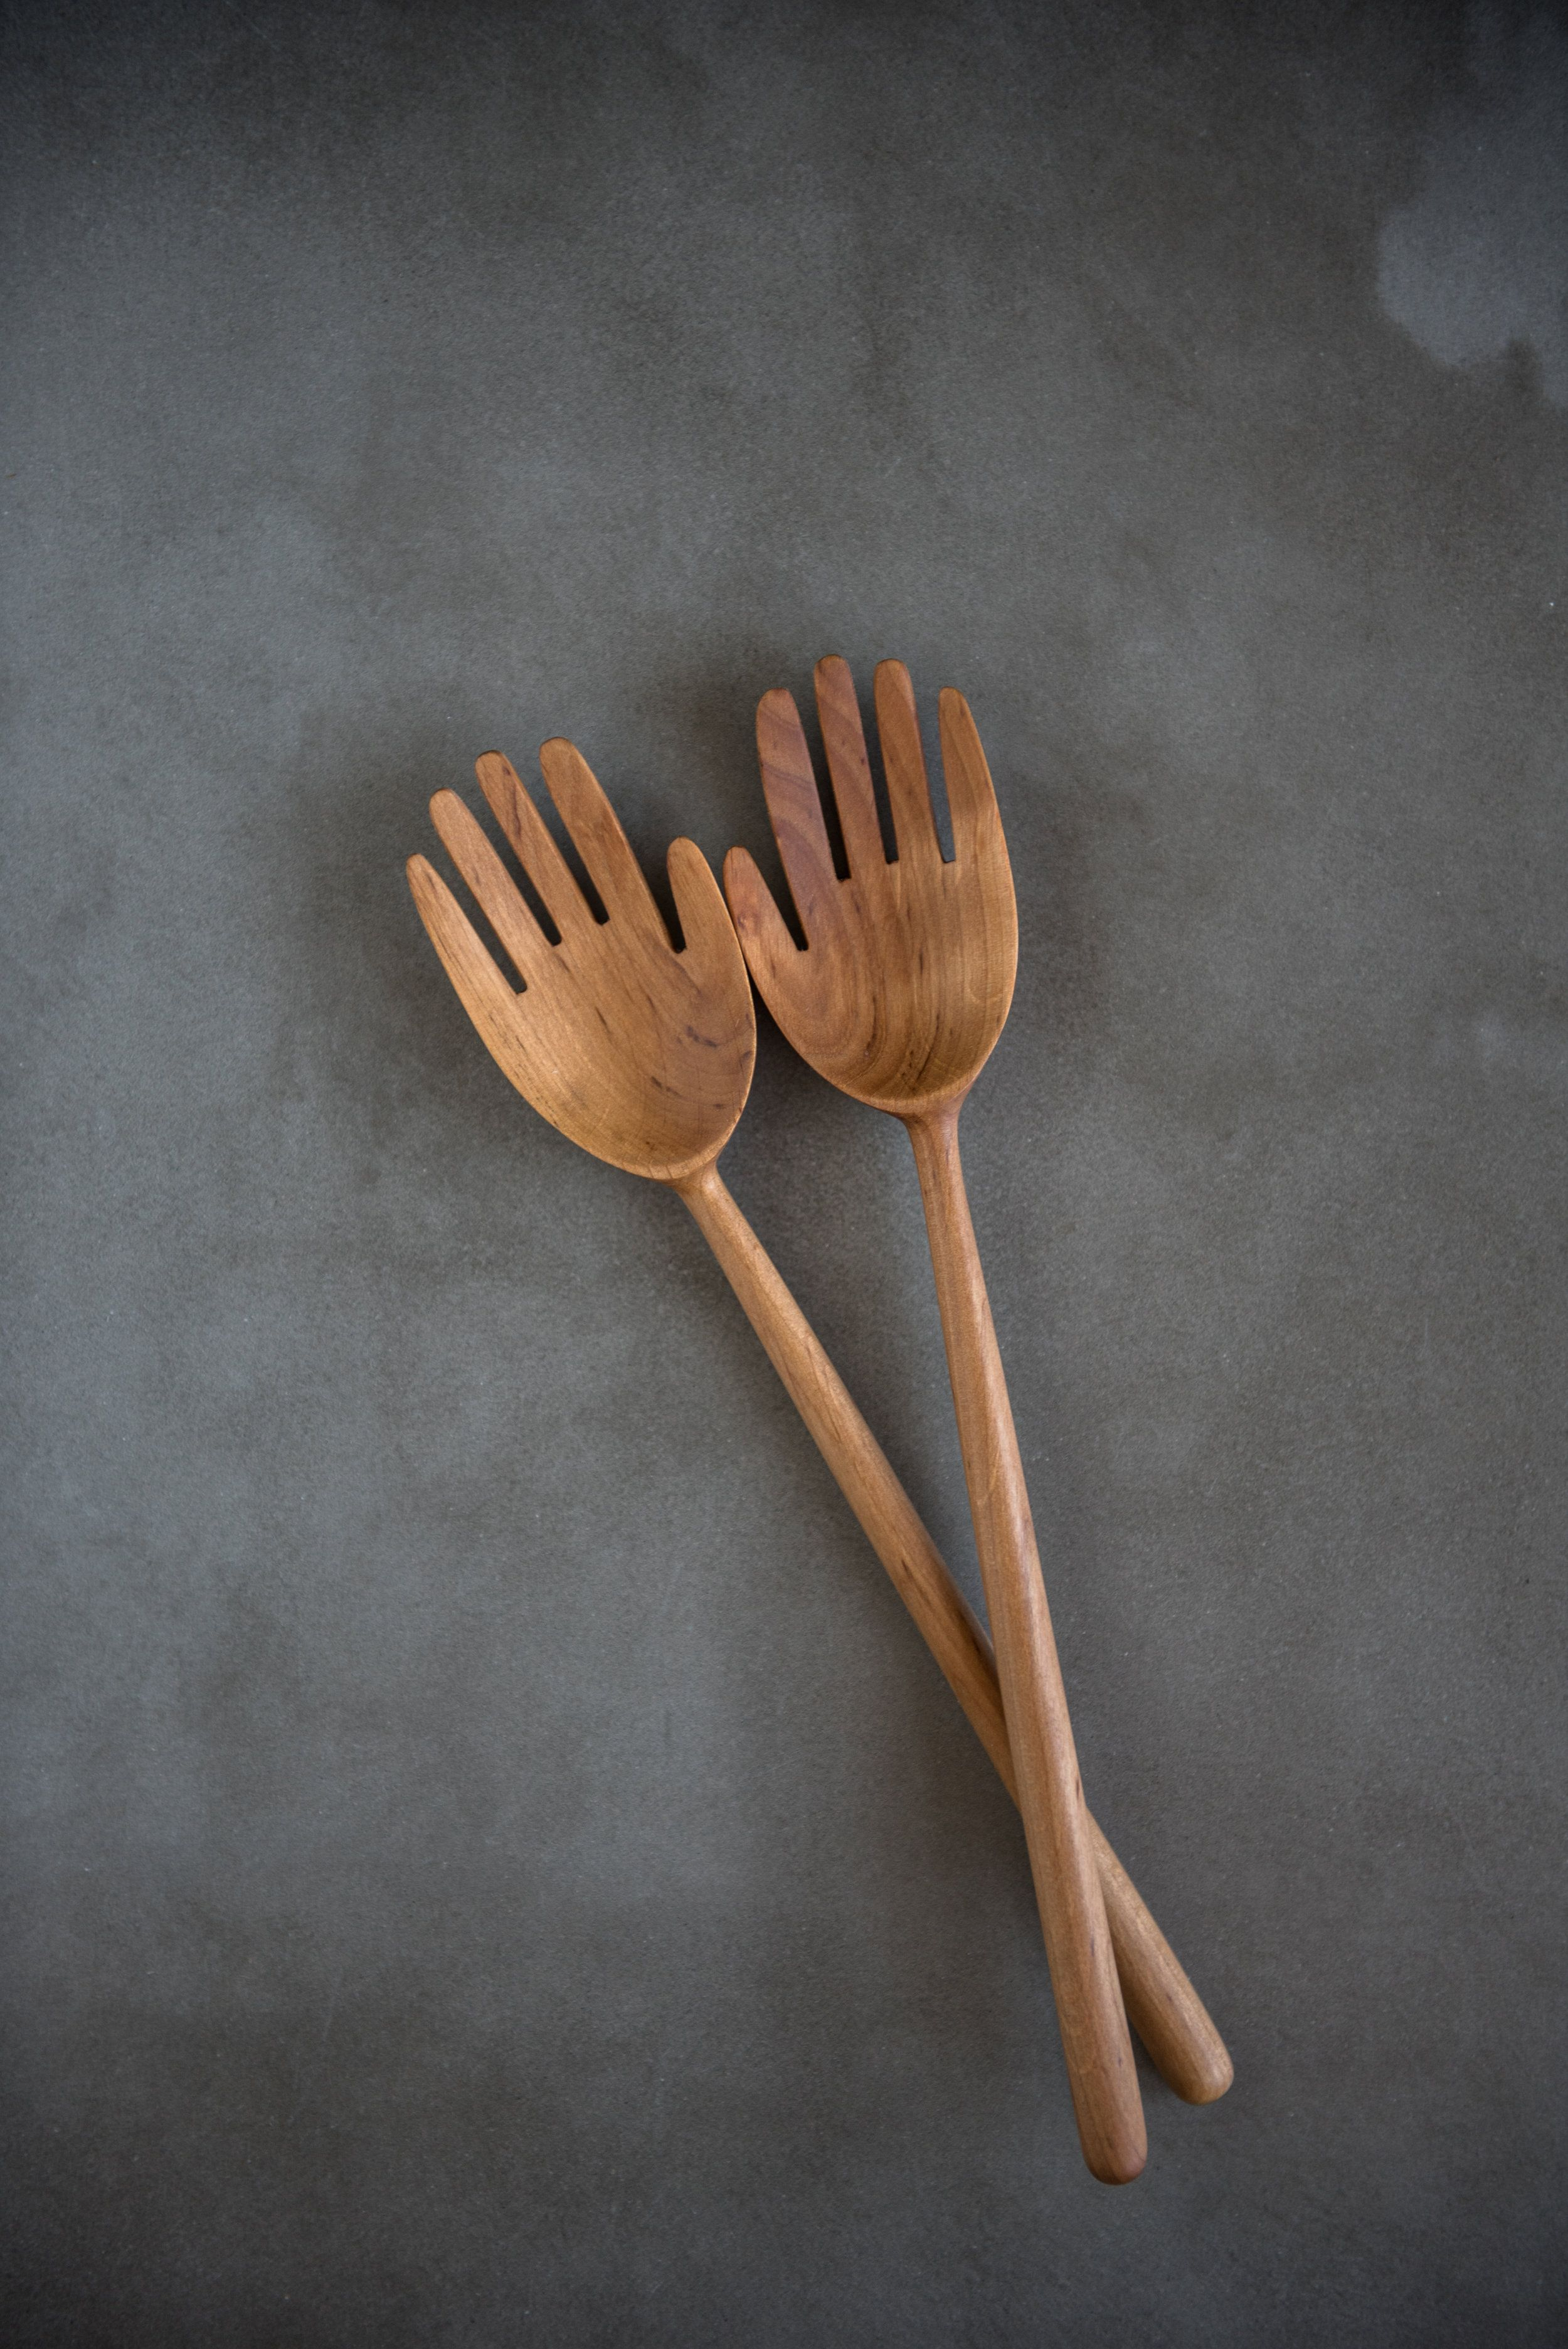 Beautifully Handcrafted Of Alder Wood These Refined Salad Servers